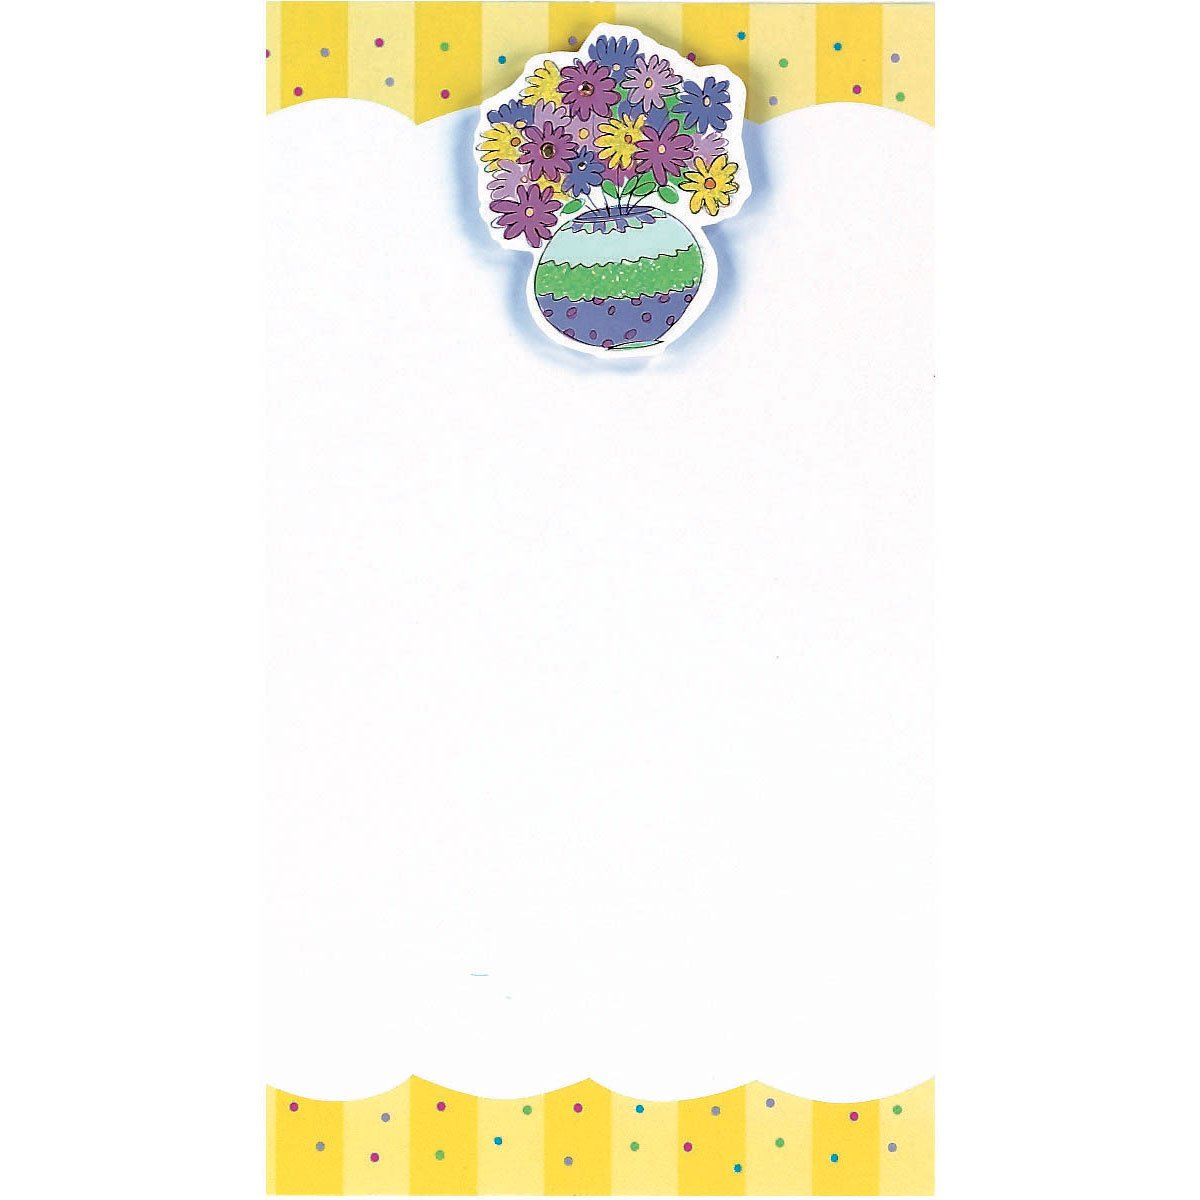 Flower Pot Imprintable Invitations 48 ct Party Supply 493566 TradeMart Inc